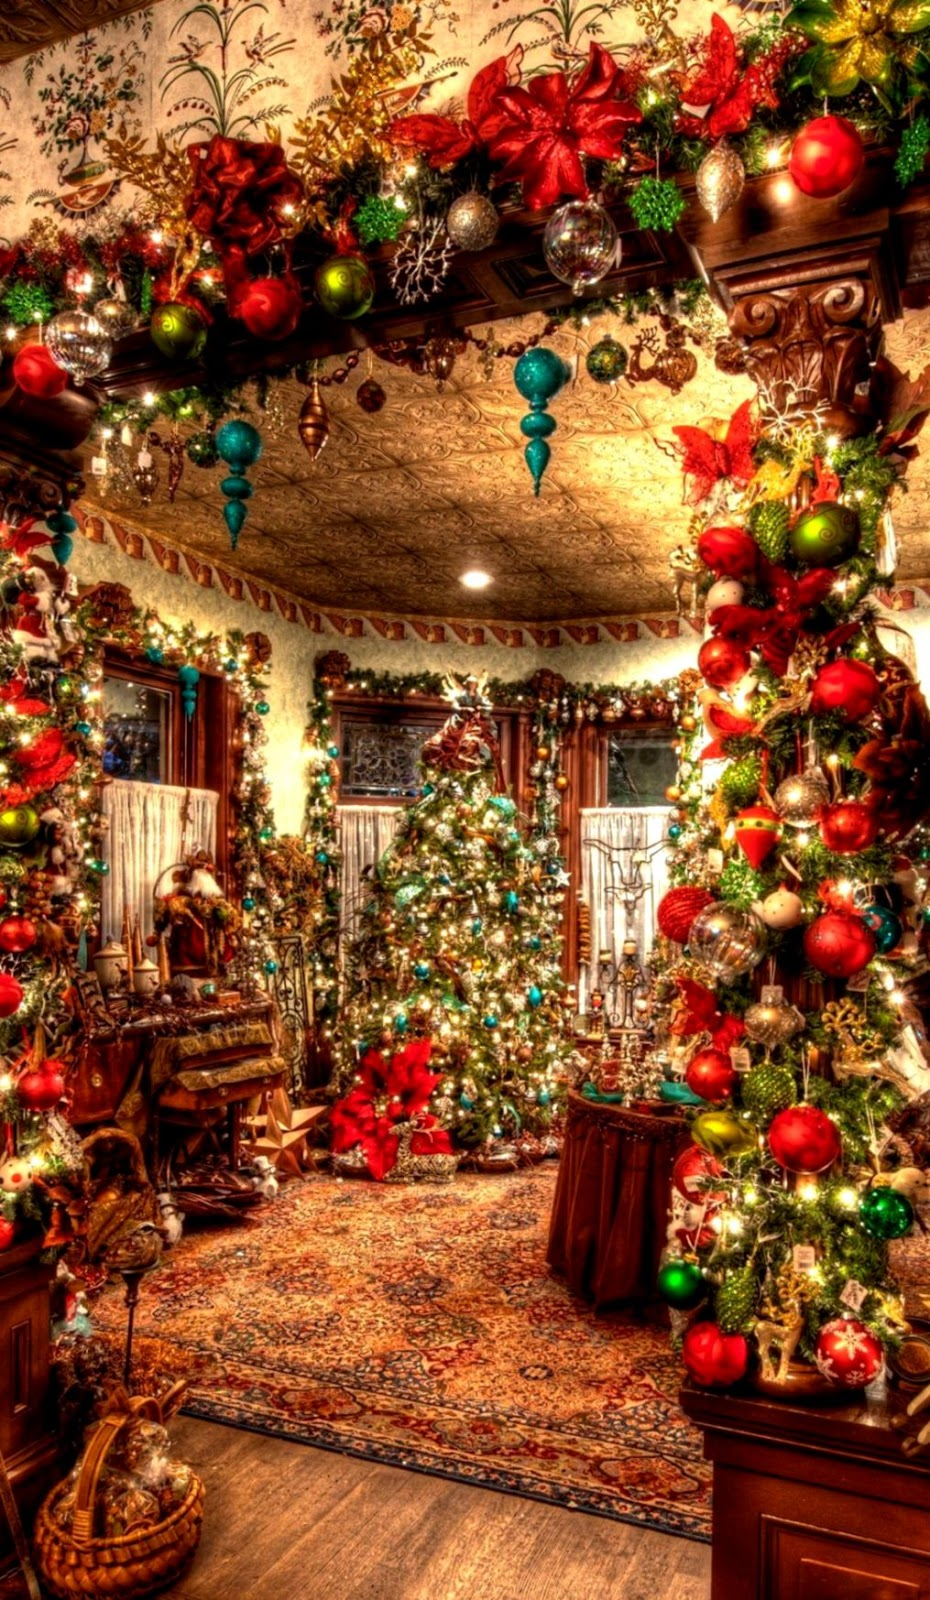 Old Fashioned Christmas Backgrounds posted by Sarah Simpson